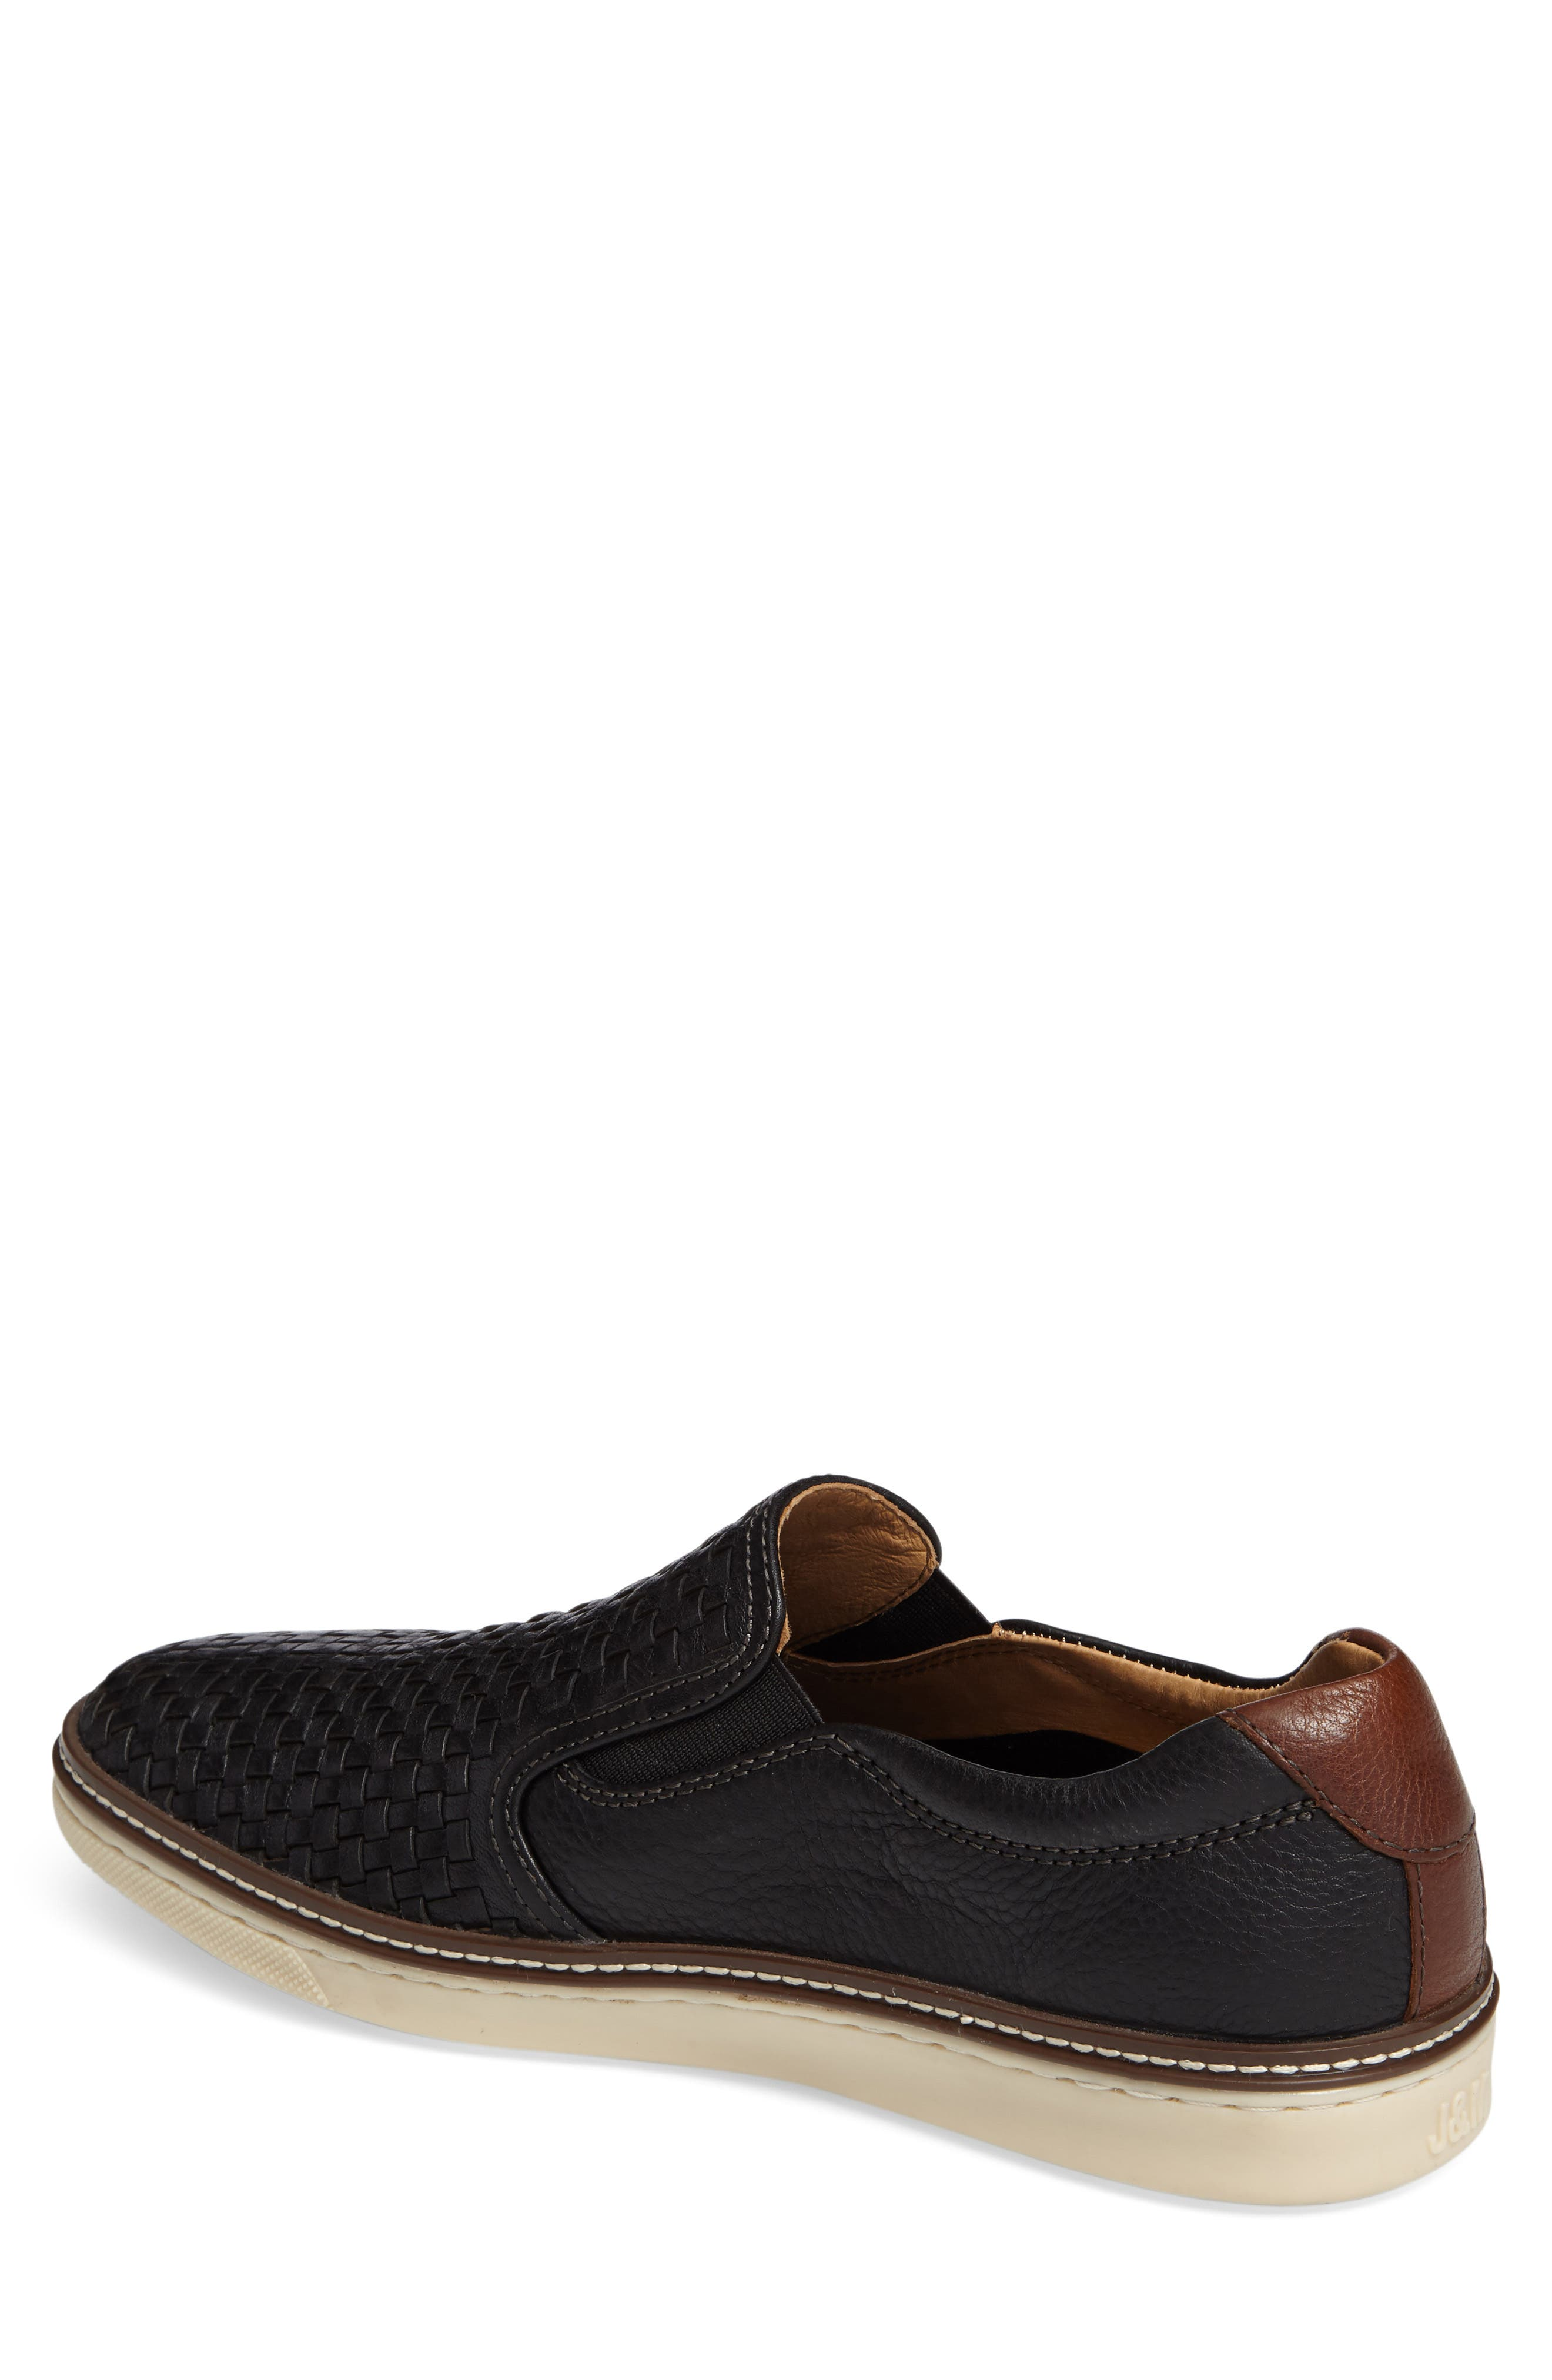 JOHNSTON & MURPHY, McGuffey Woven Slip-On Sneaker, Alternate thumbnail 2, color, BLACK LEATHER